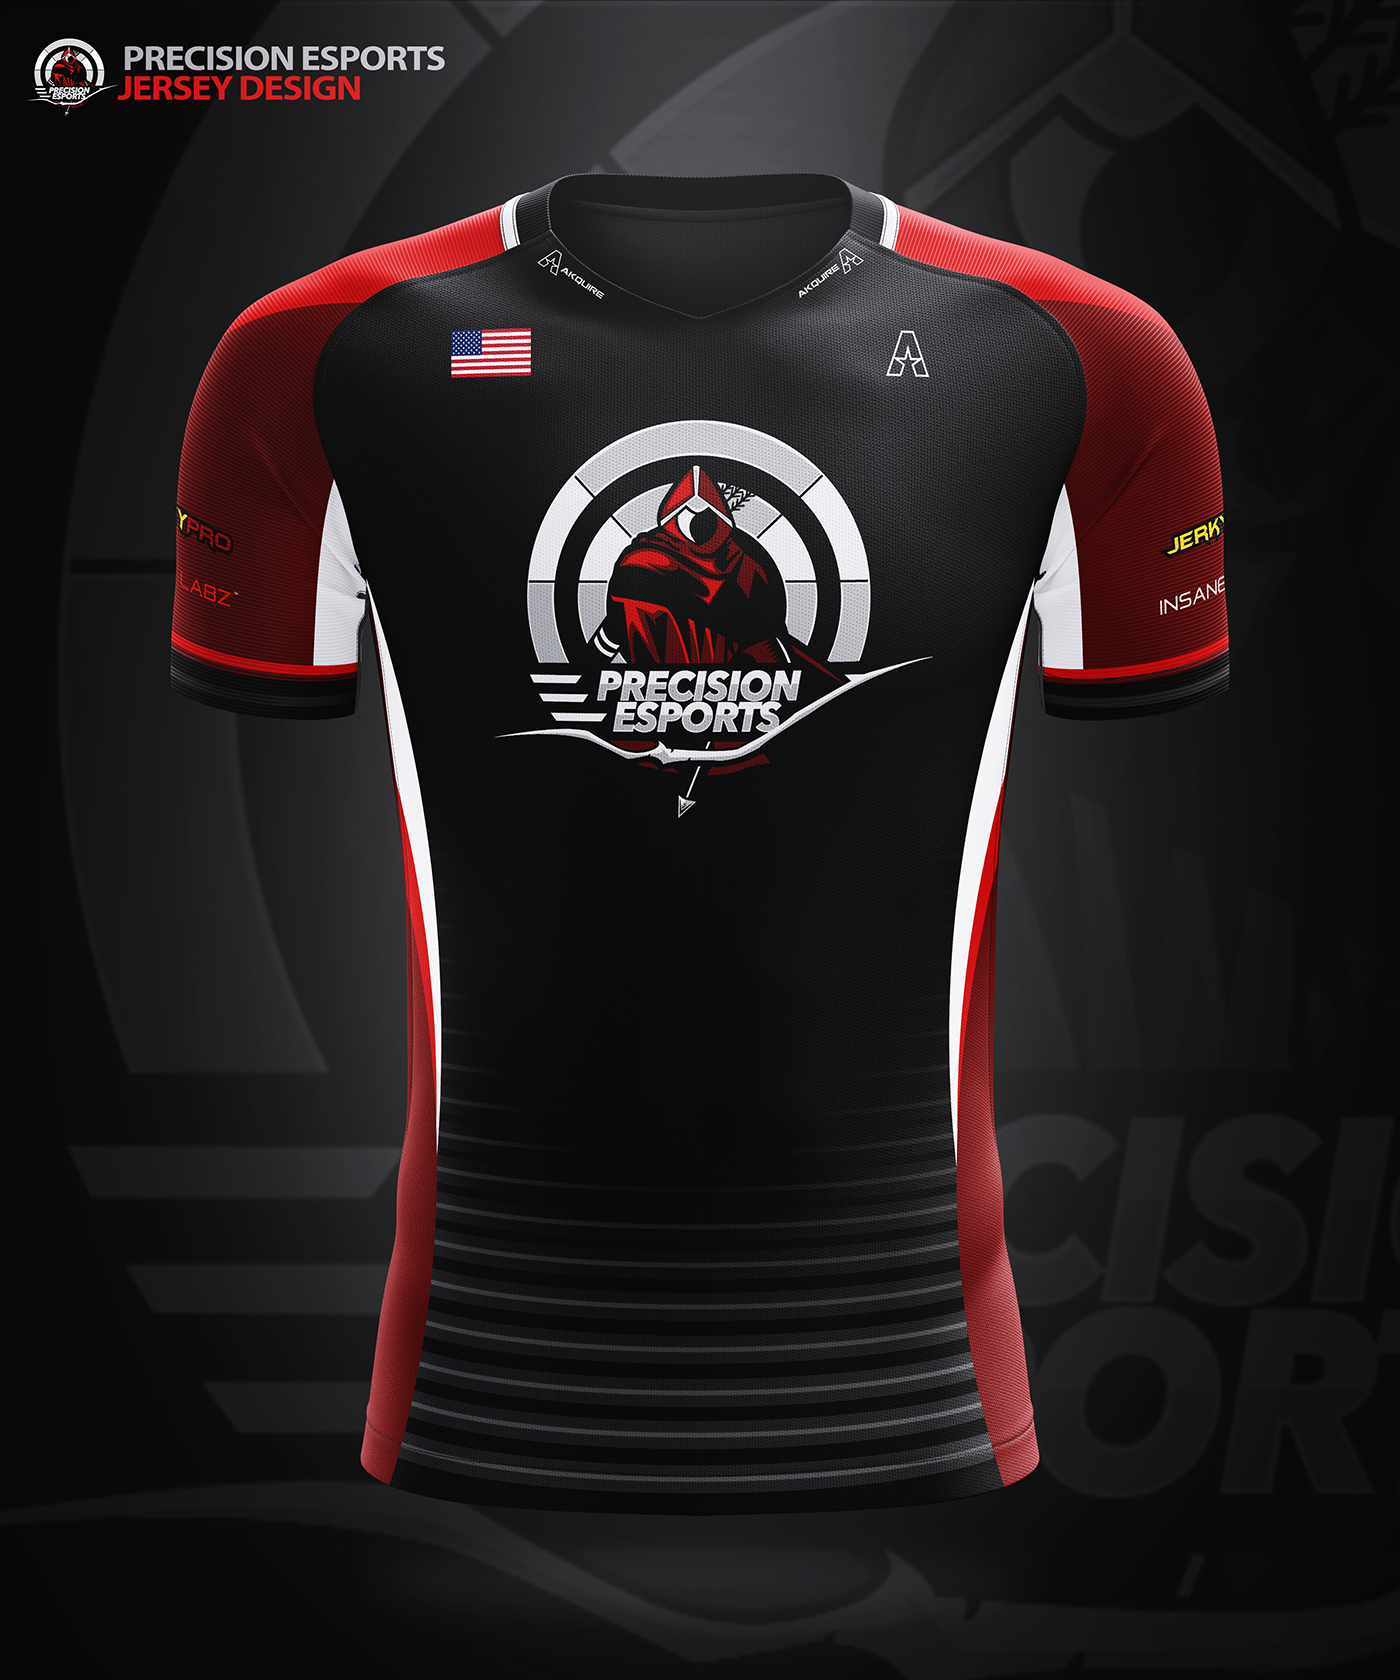 02f790df3 100+ Hif Esport Jersey Dombai Sports Shop. Esport Jersey E Sport ...